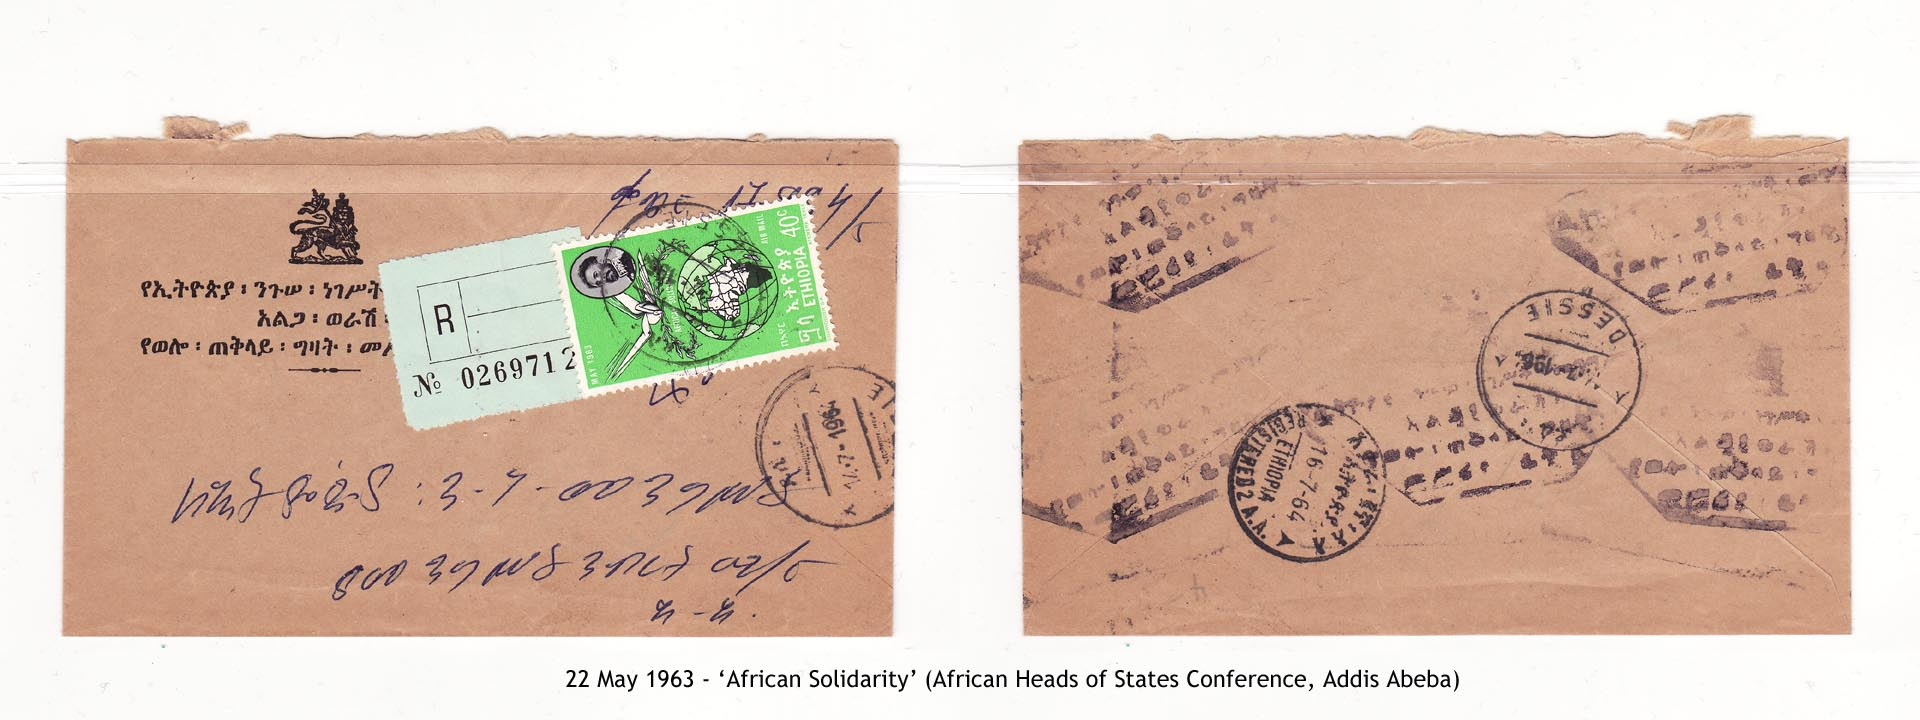 19630522 – African Solidarity (African Heads of States Conference, Addis Abeba)